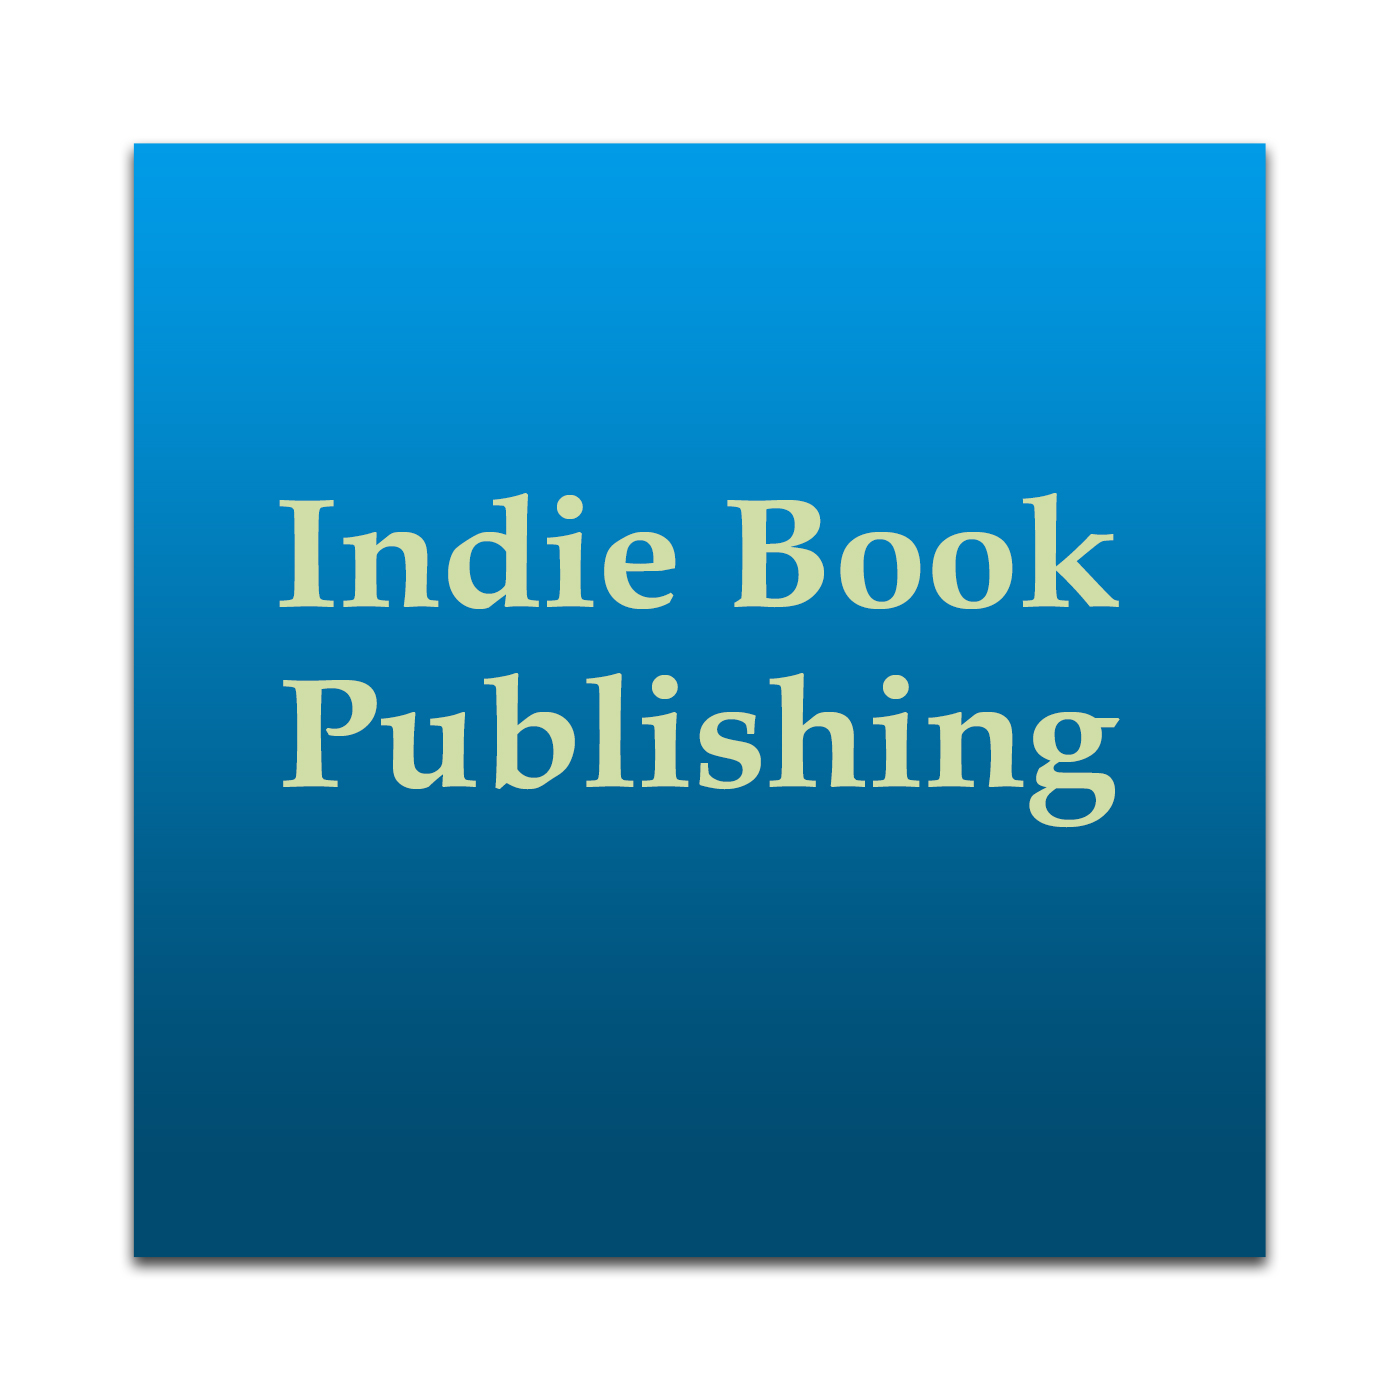 Indie Book Publishing